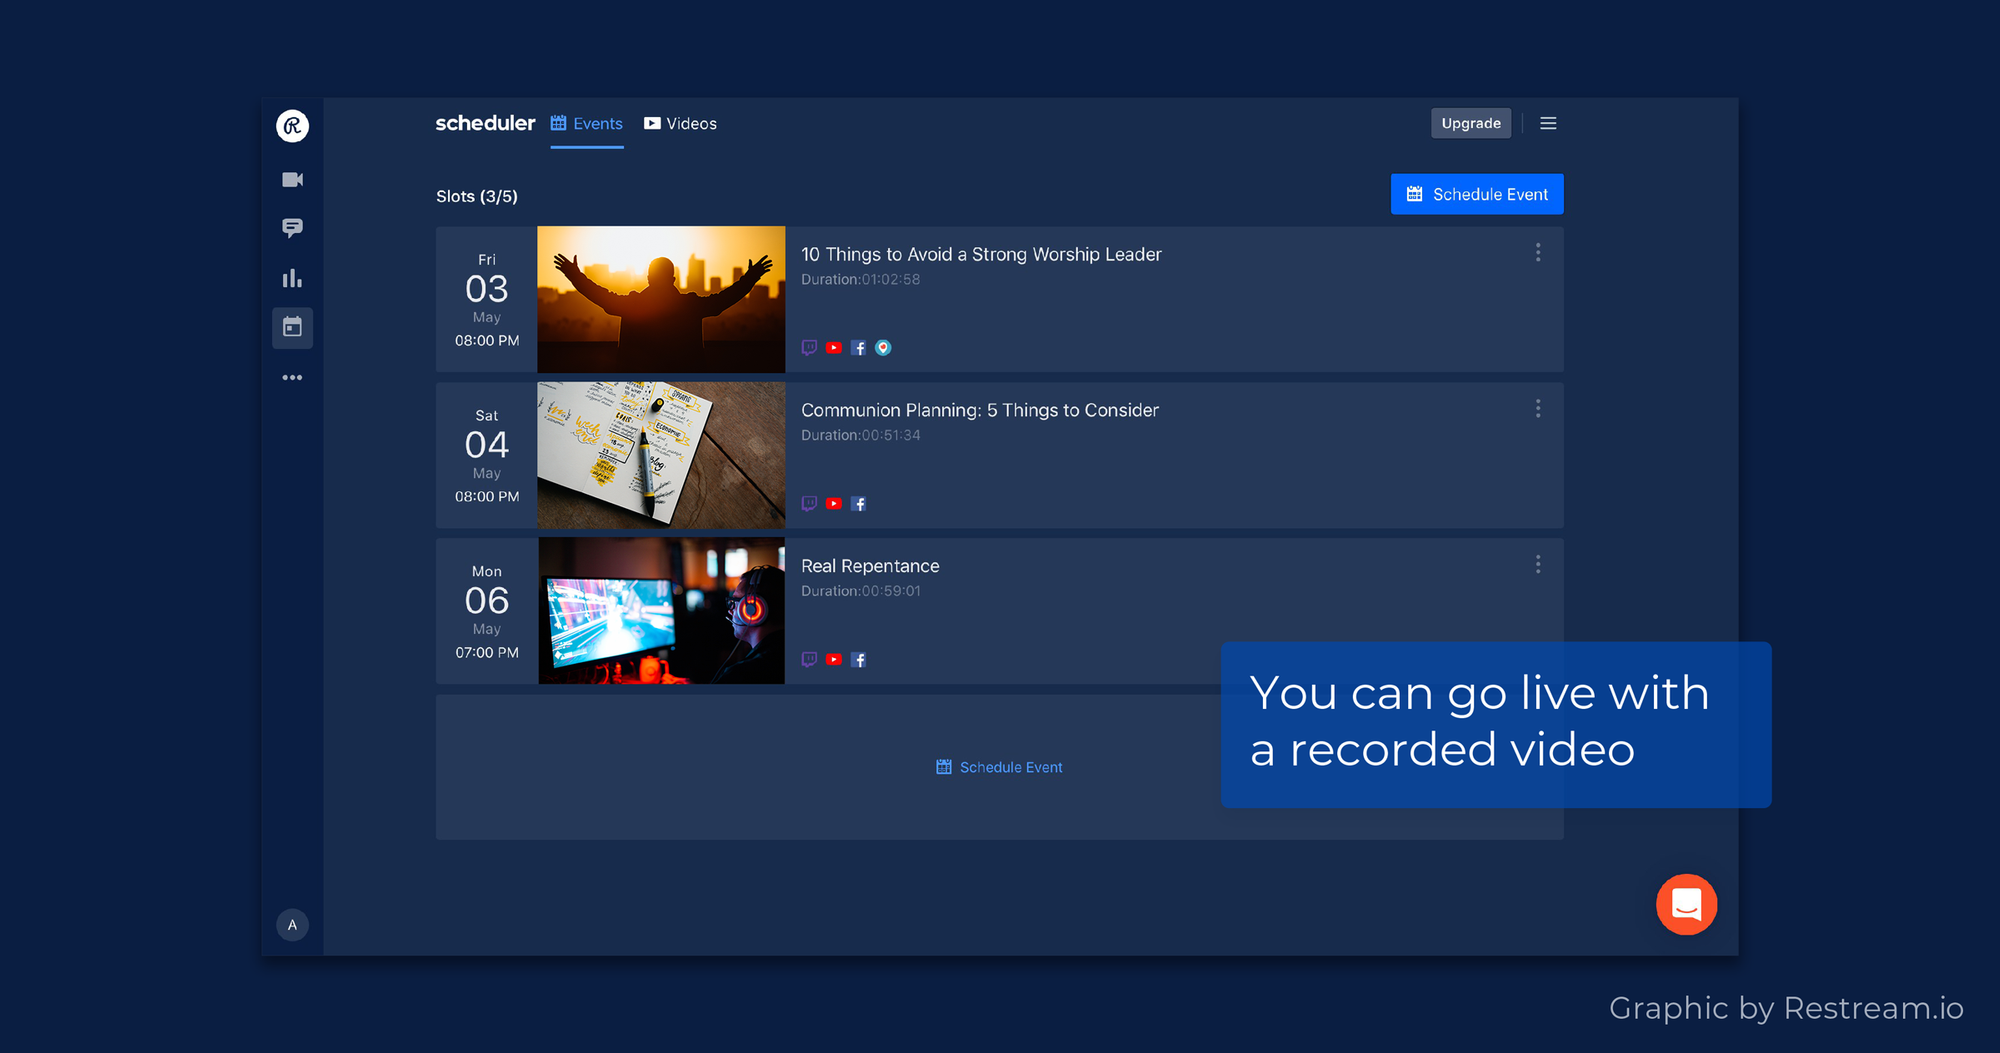 You can go live with recorded video